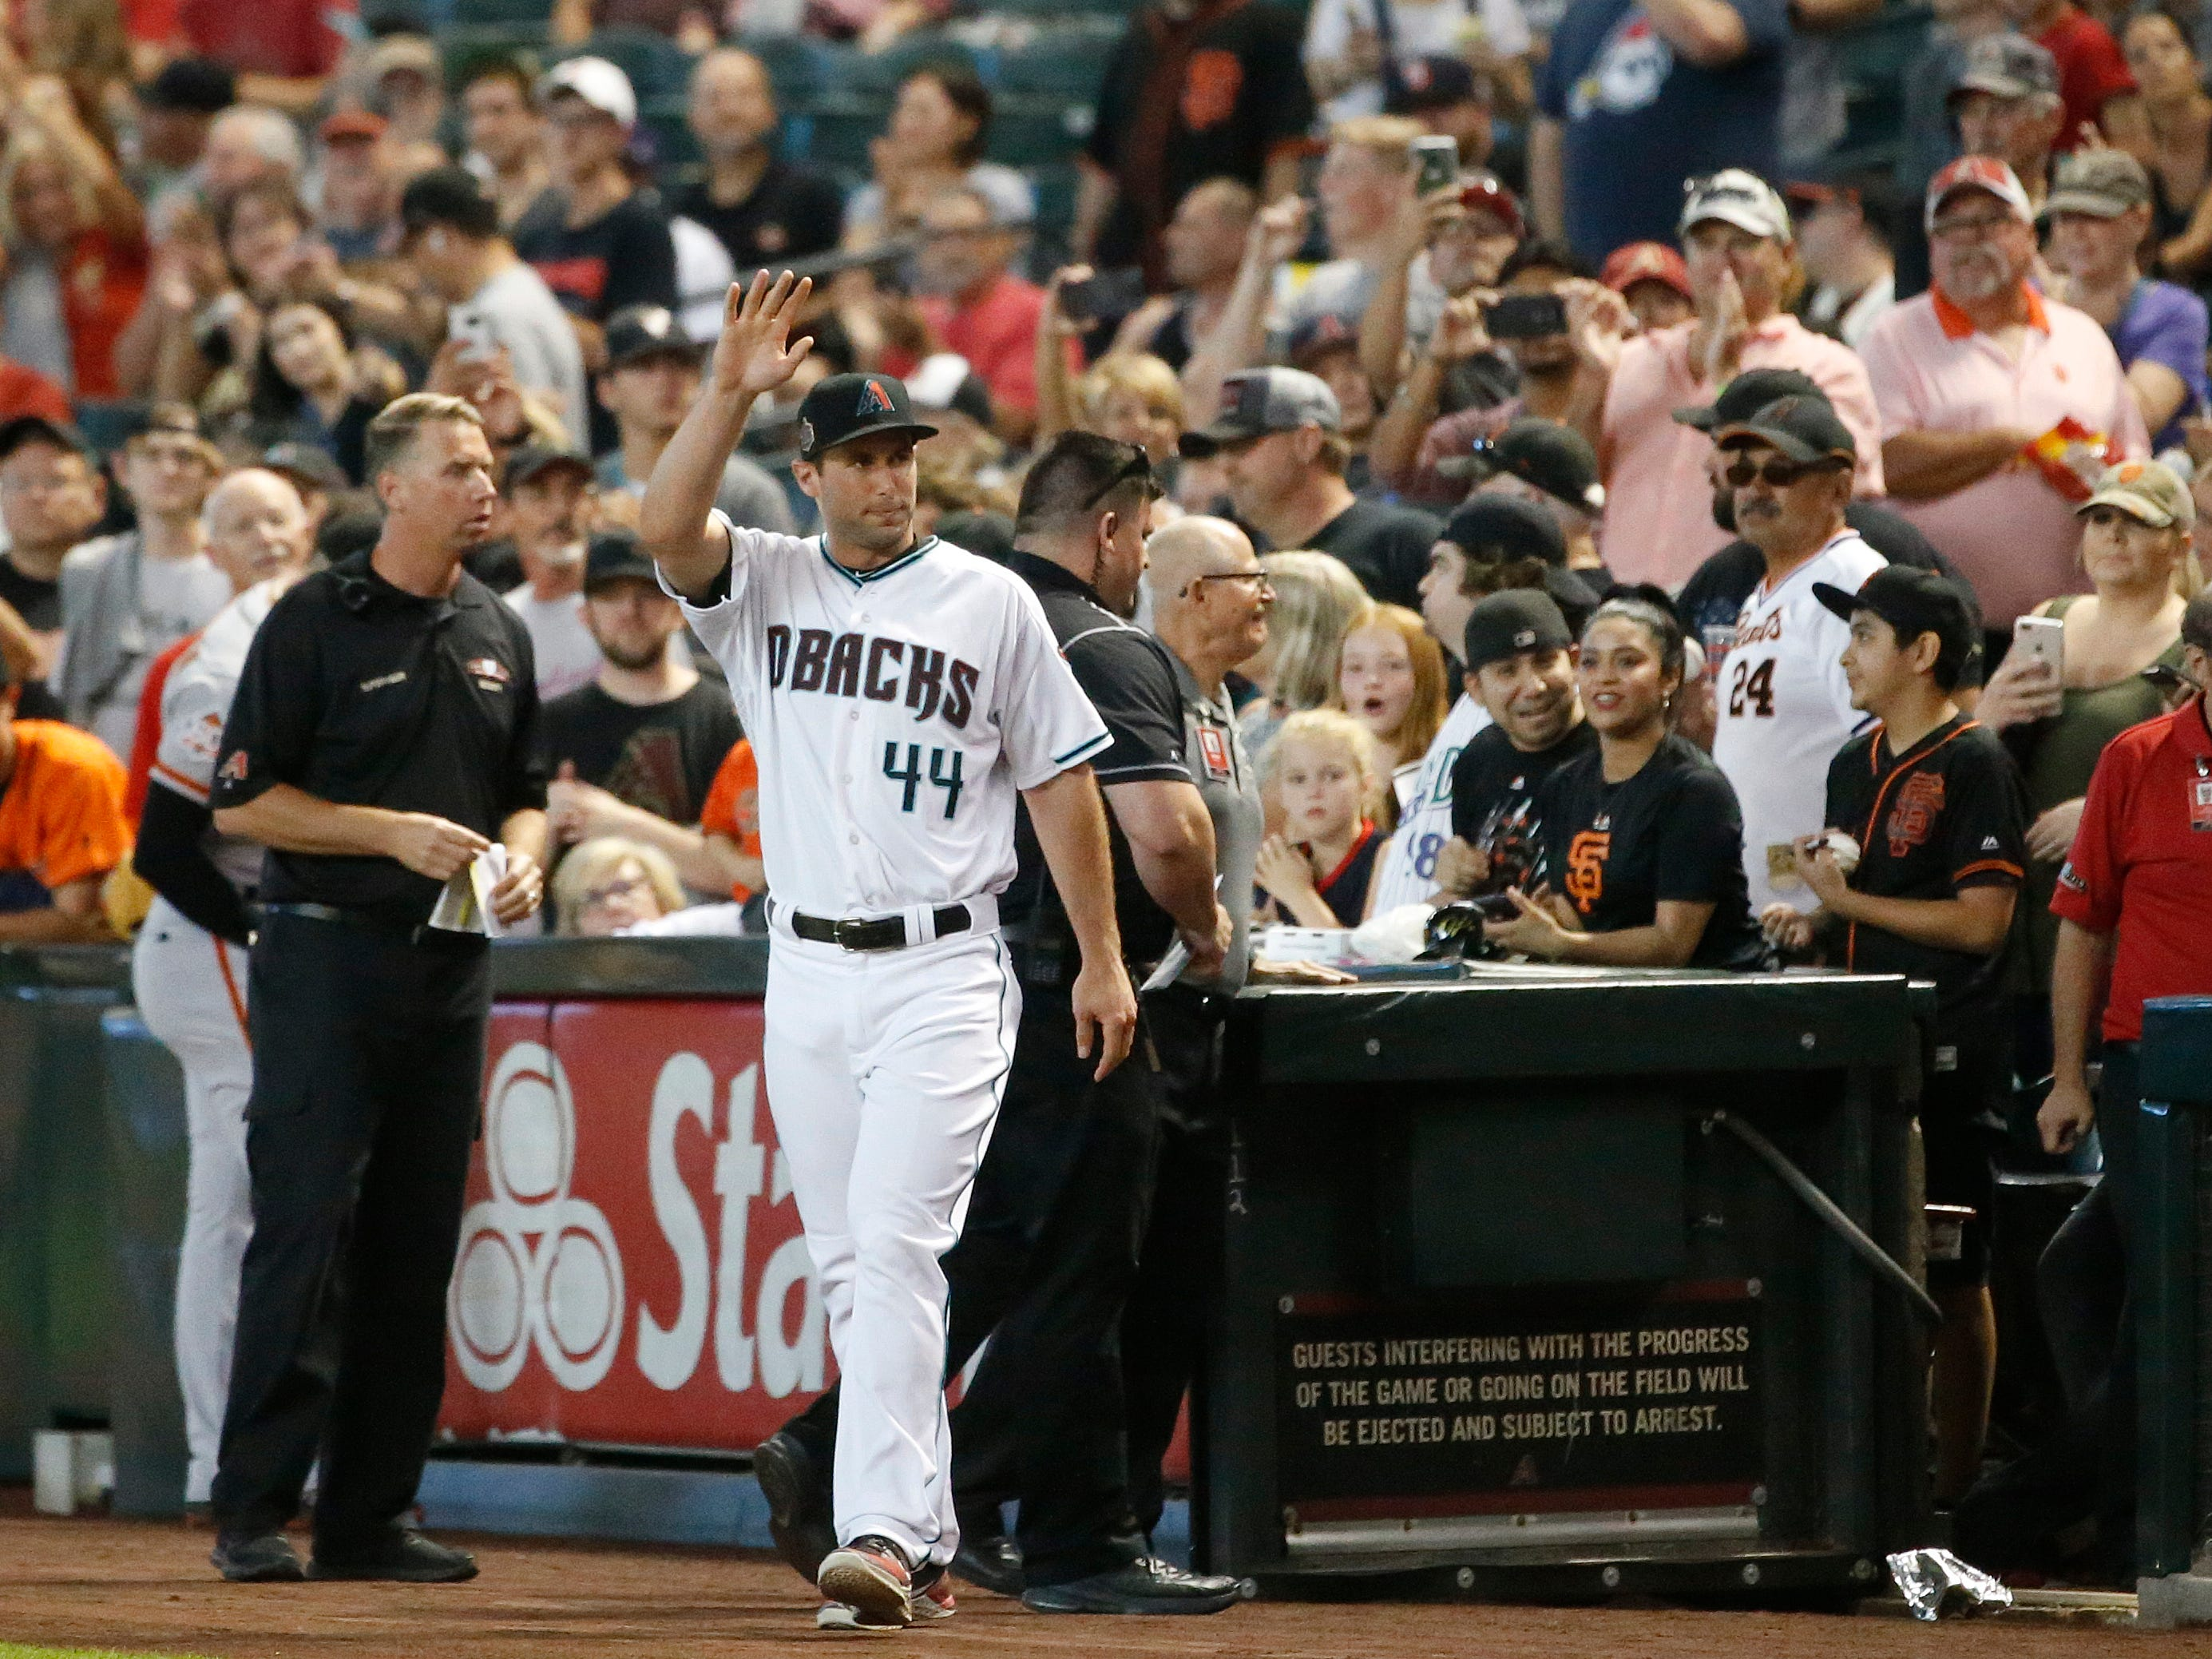 Diamondbacks Paul Goldschmidt (44) is announced as a member of the 20th Anniversary team before a Diamondbacks game at Chase Field in Phoenix, Ariz. on Aug. 4, 2018.